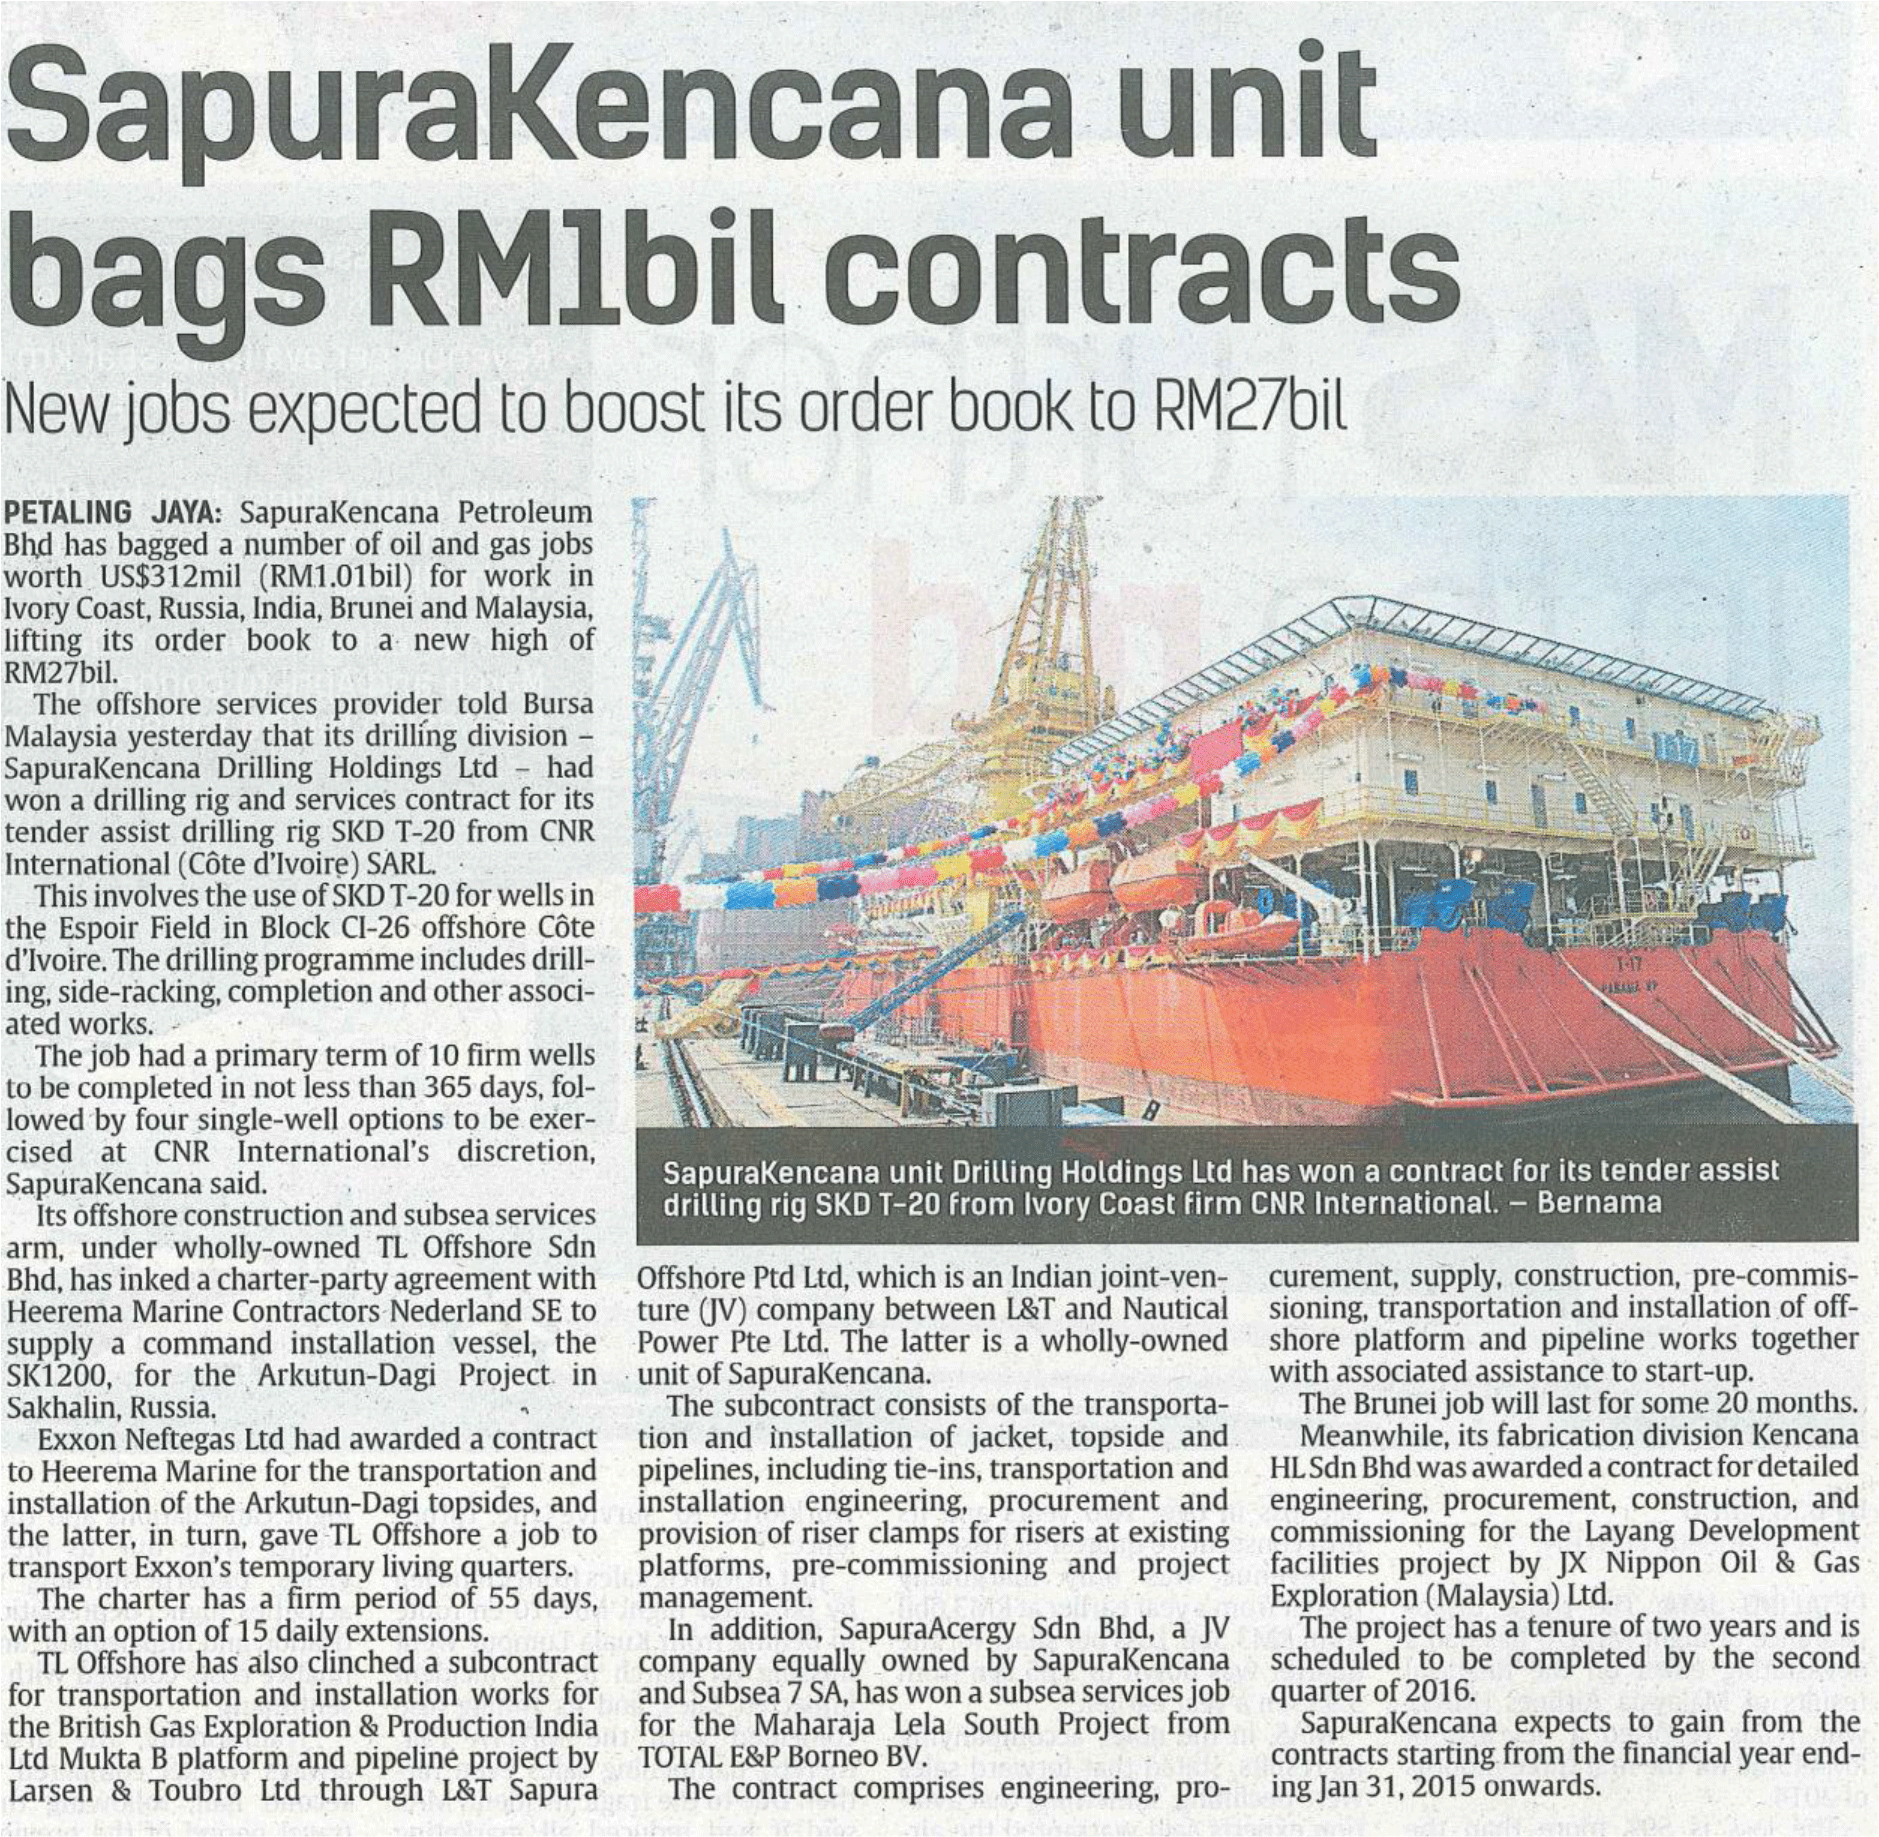 The-Star---SapuraKencana-unit-bags-RM1bil-contracts-(150514)